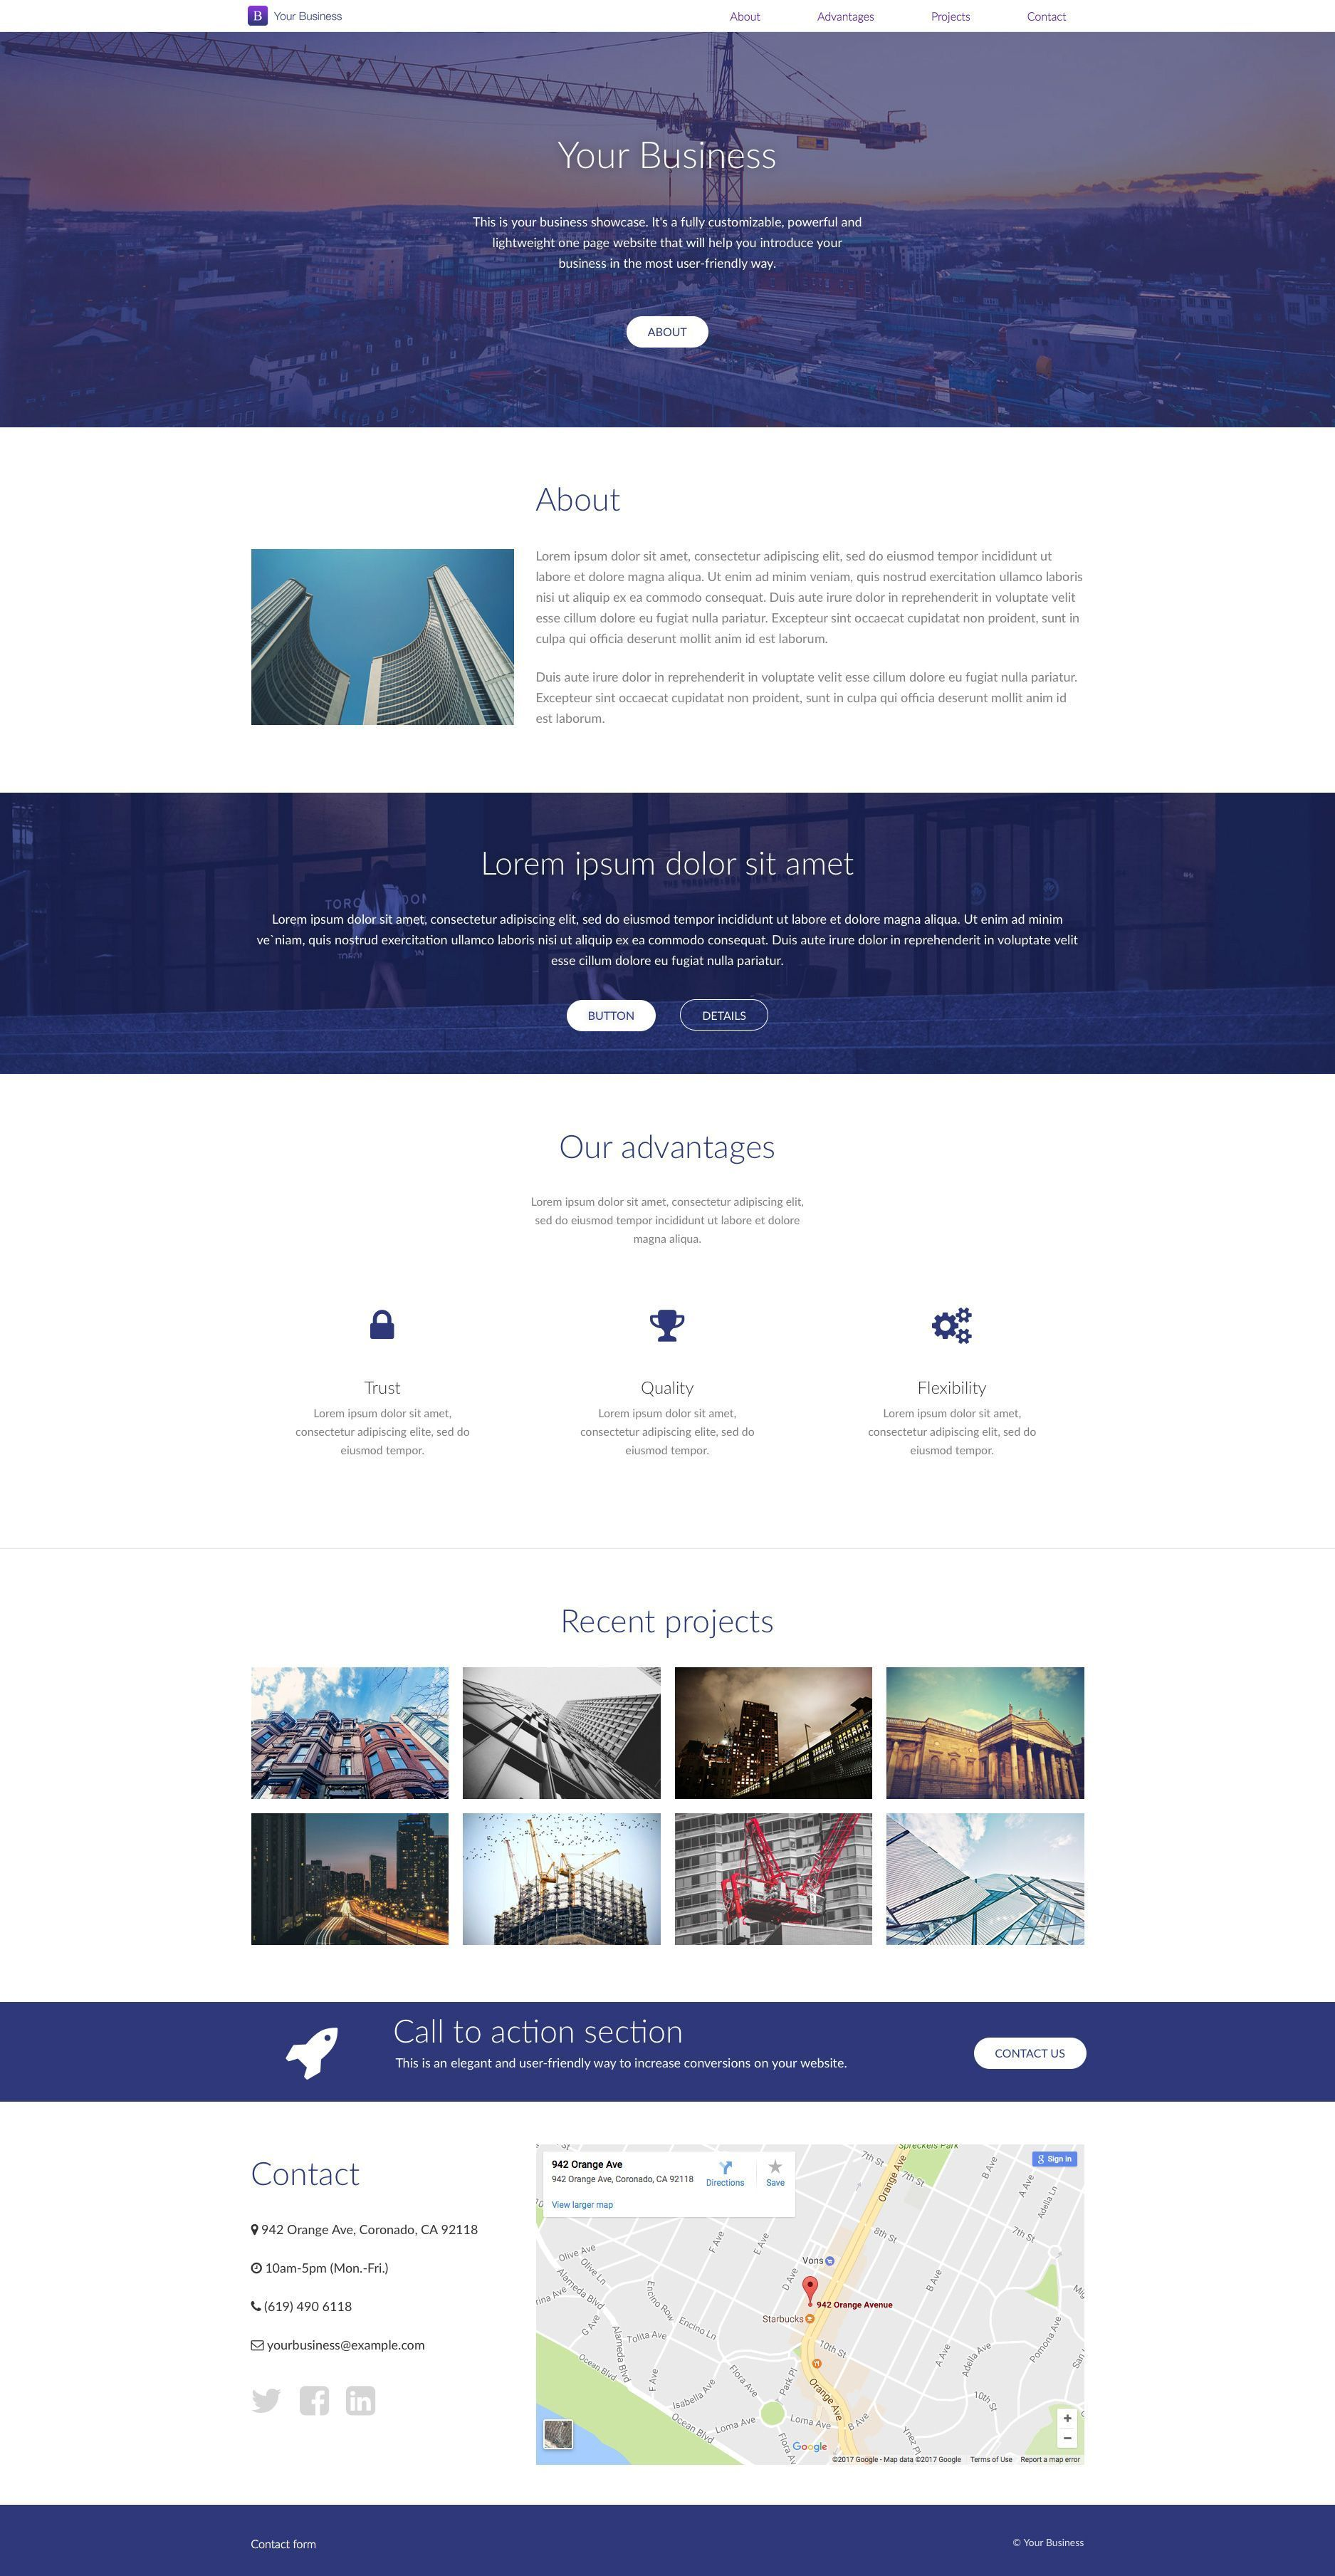 Your business is a free html5 one page website template which comes your business is a free html5 one page website template which comes with two different color friedricerecipe Images